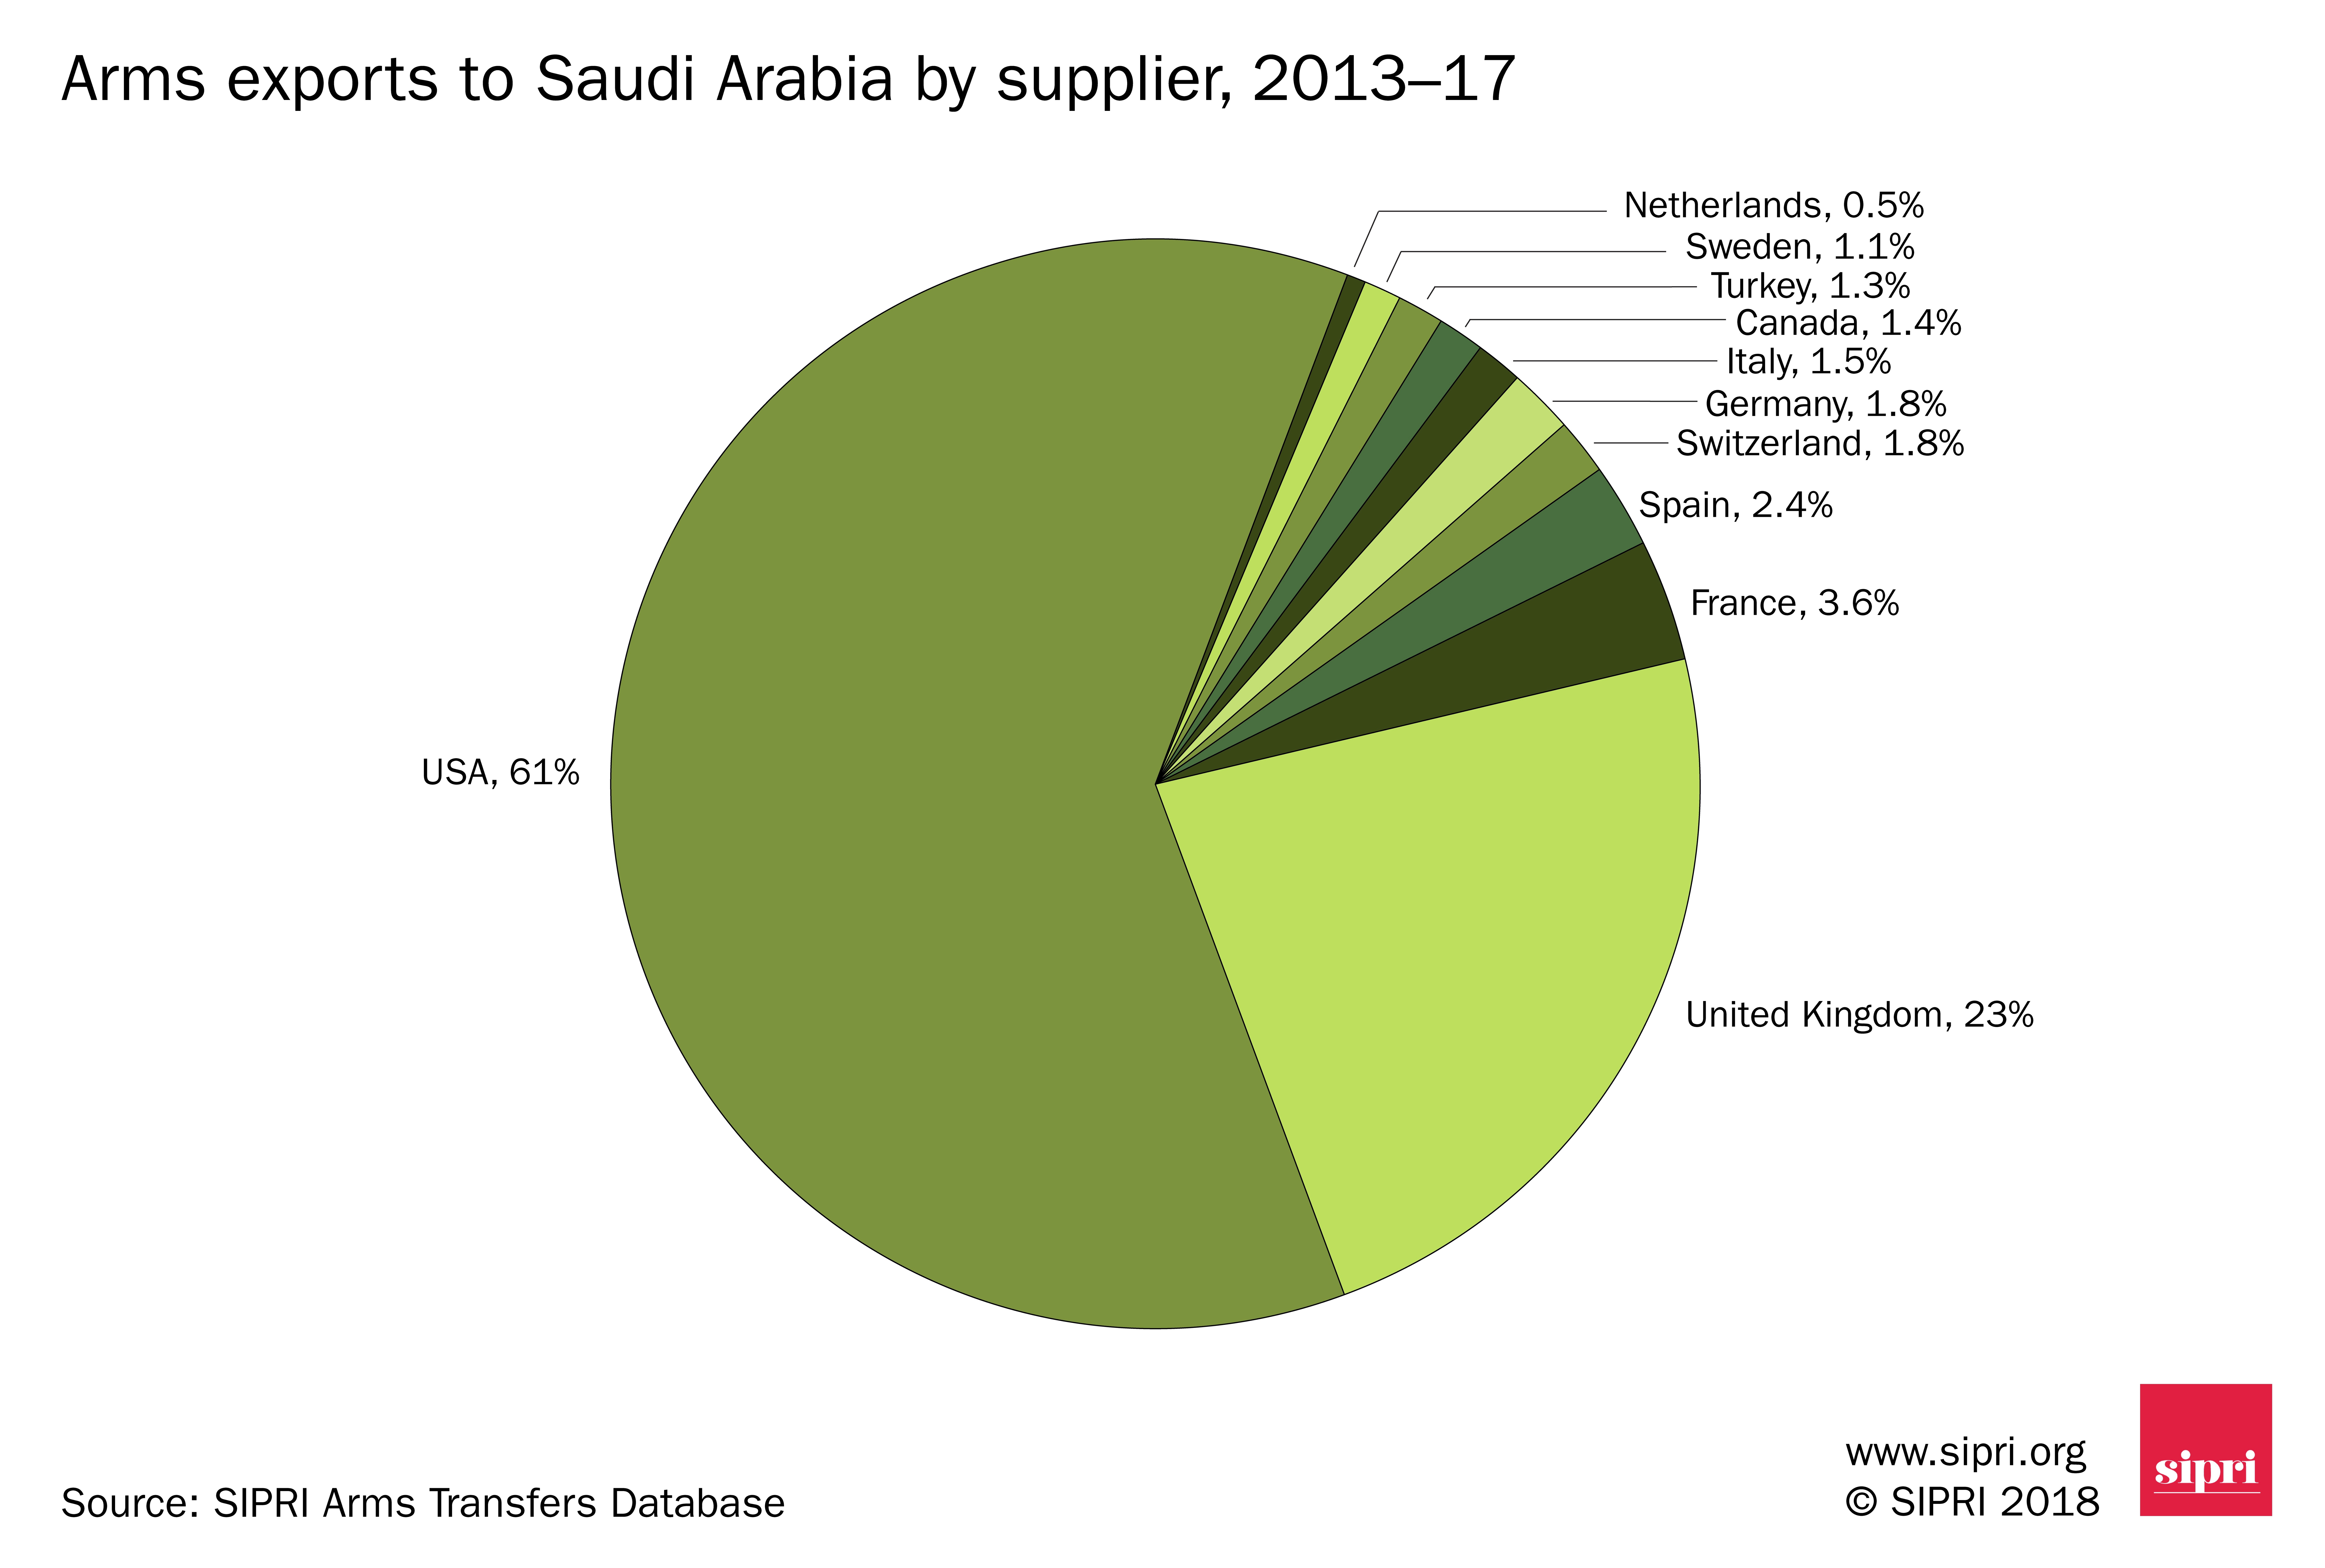 Figure 4. Arms exports to Saudi Arabia by supplier, 2013–17.